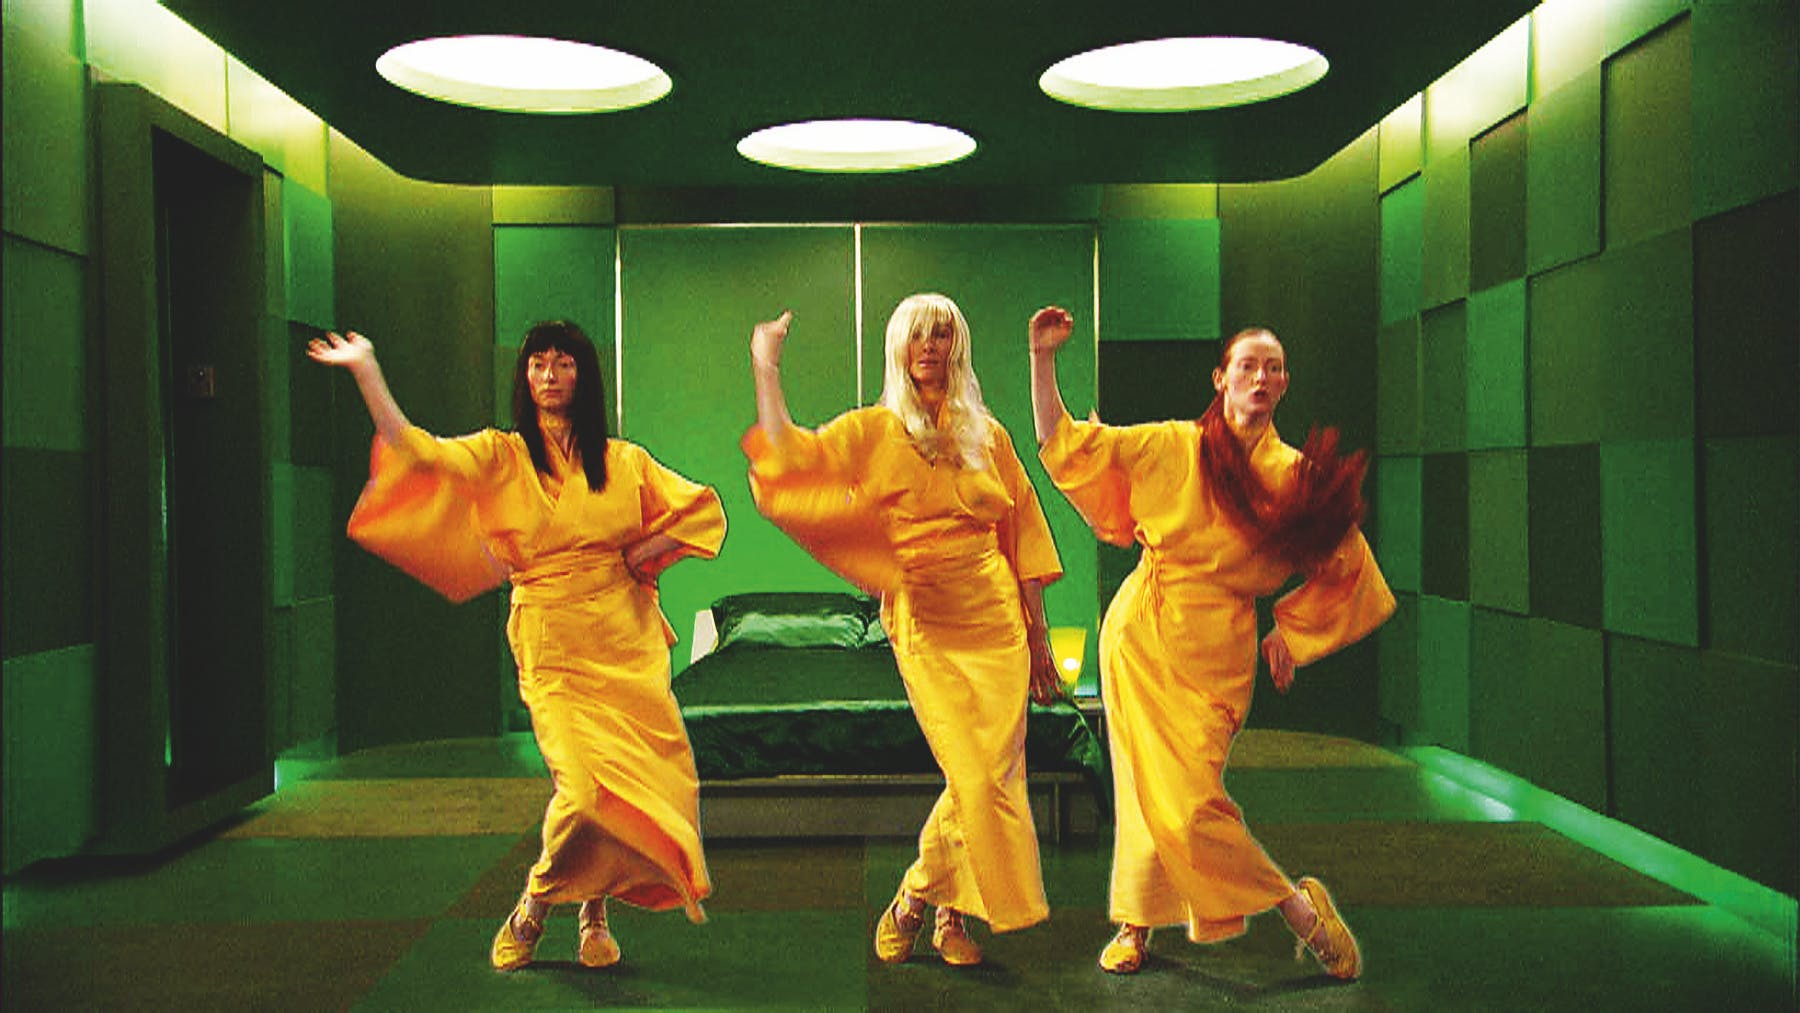 Three women wearing yellow dresses posing in a green room.